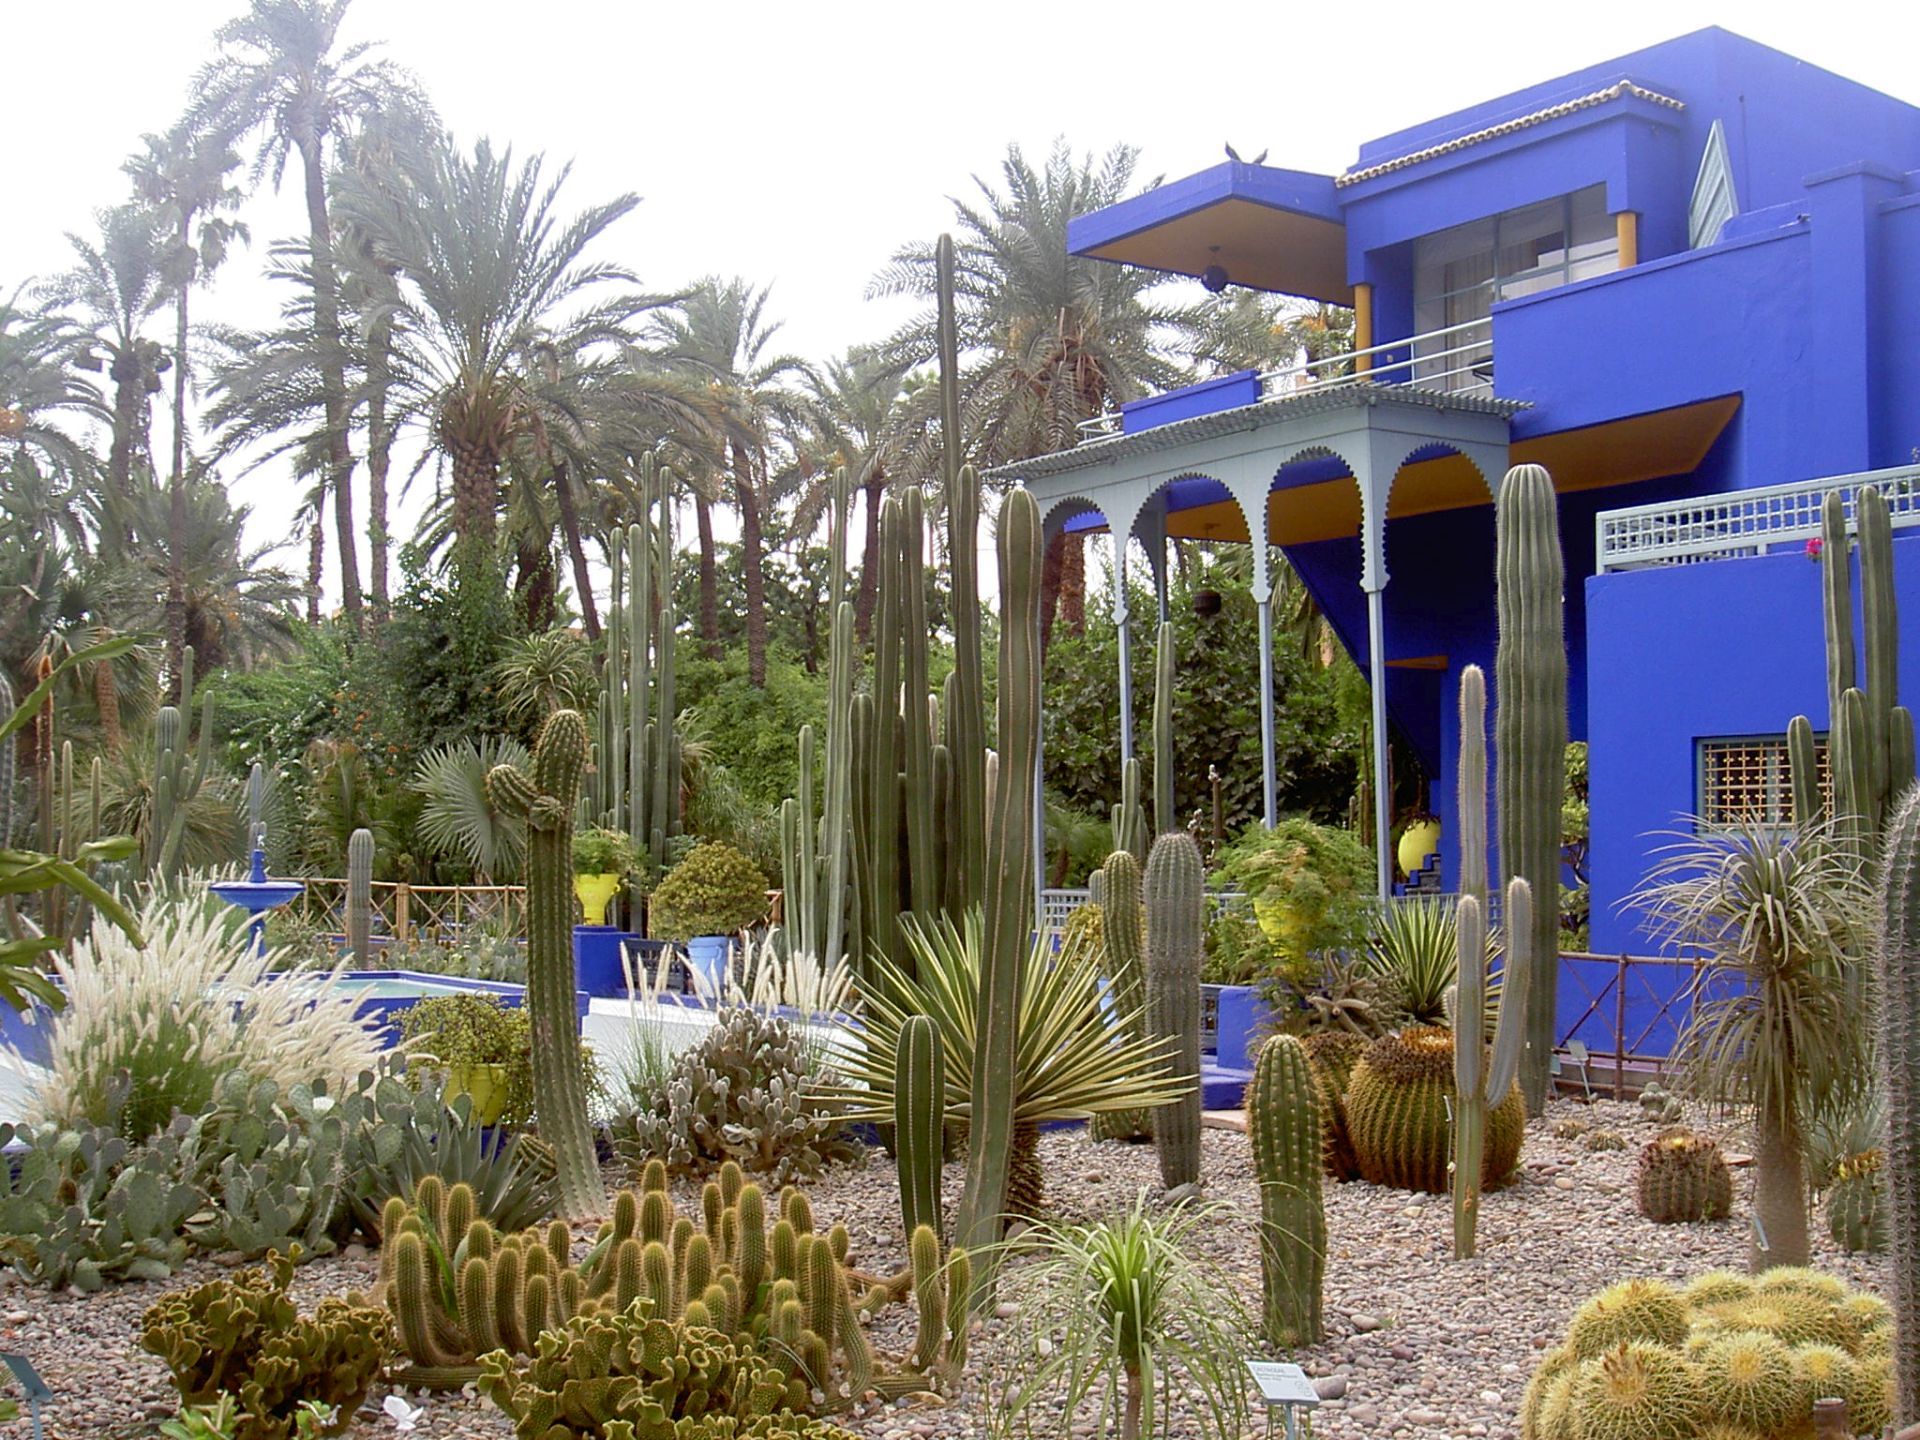 Garden made up of various types of cactus around a marble house. One of the most beautiful gardens